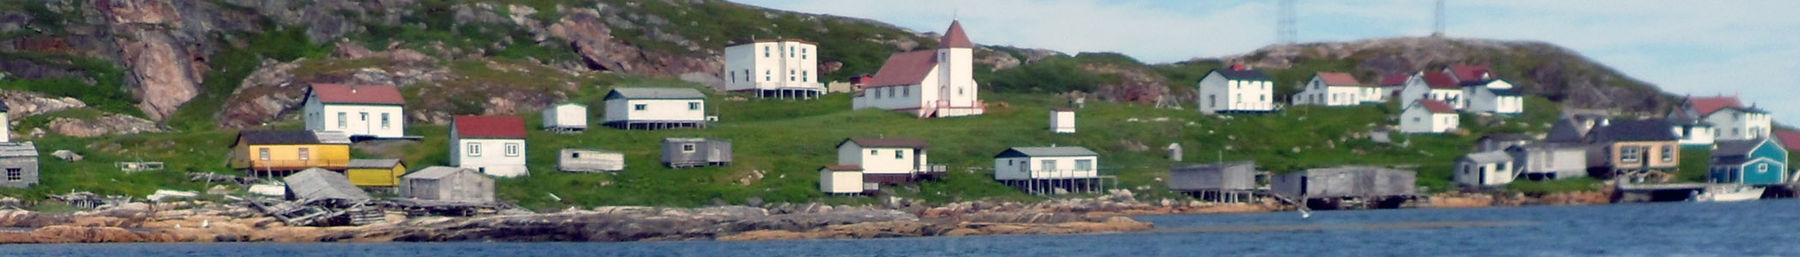 Battle Harbour (Labrador) banner Shoreline.jpg